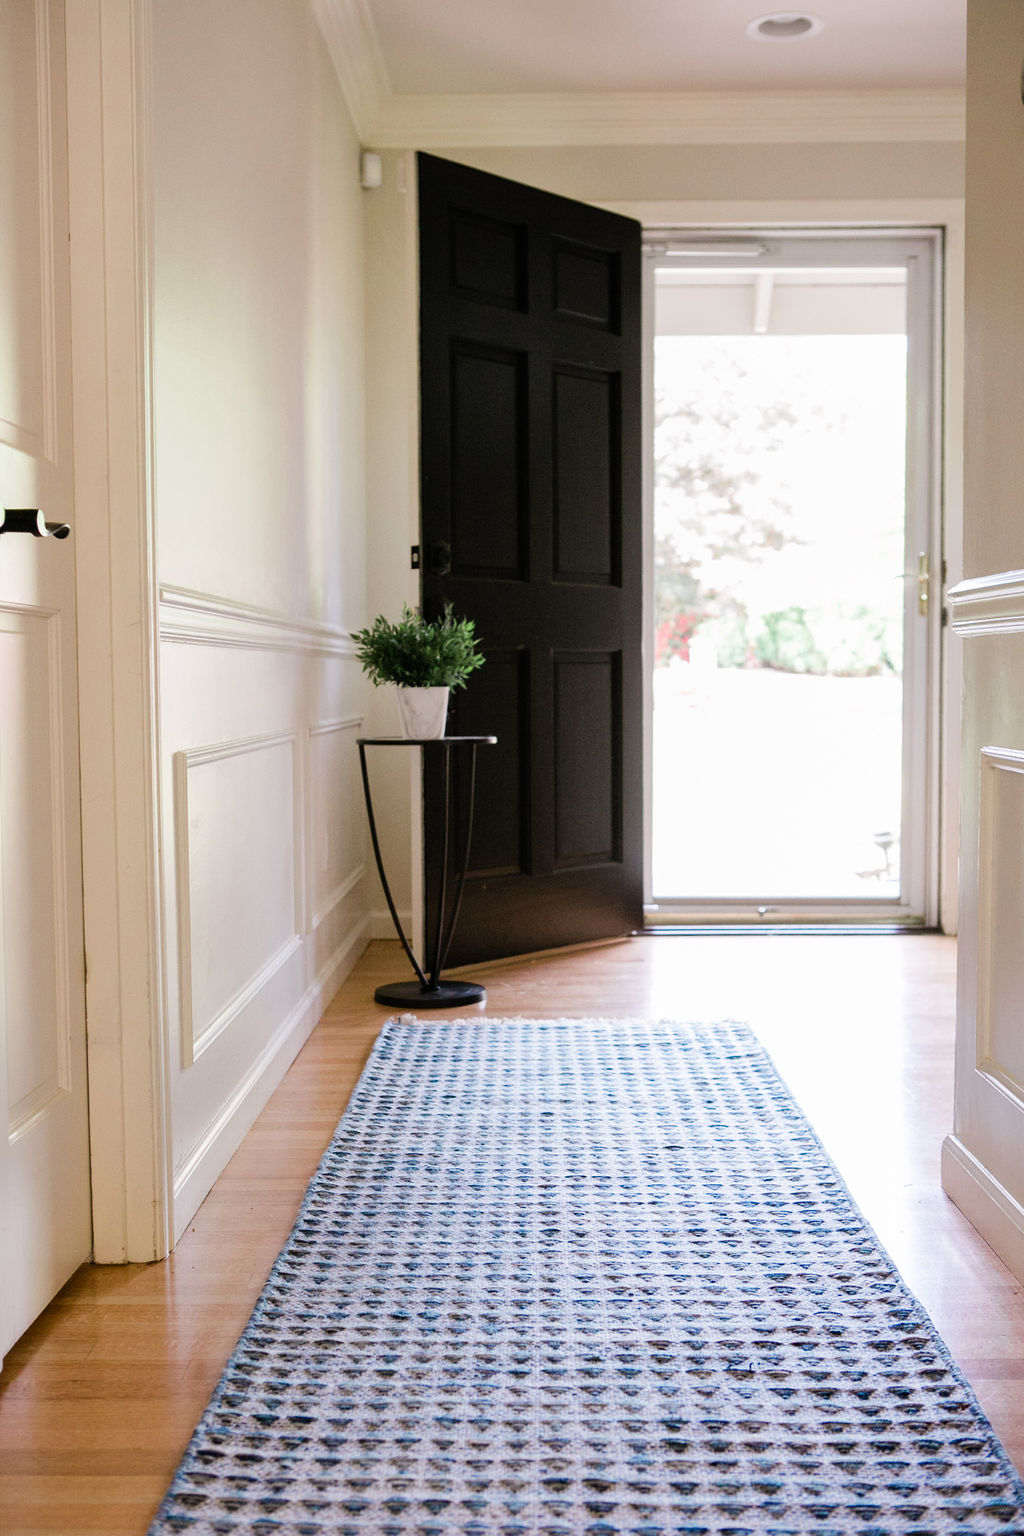 Navy blue entryway runner with black door and white millwork.